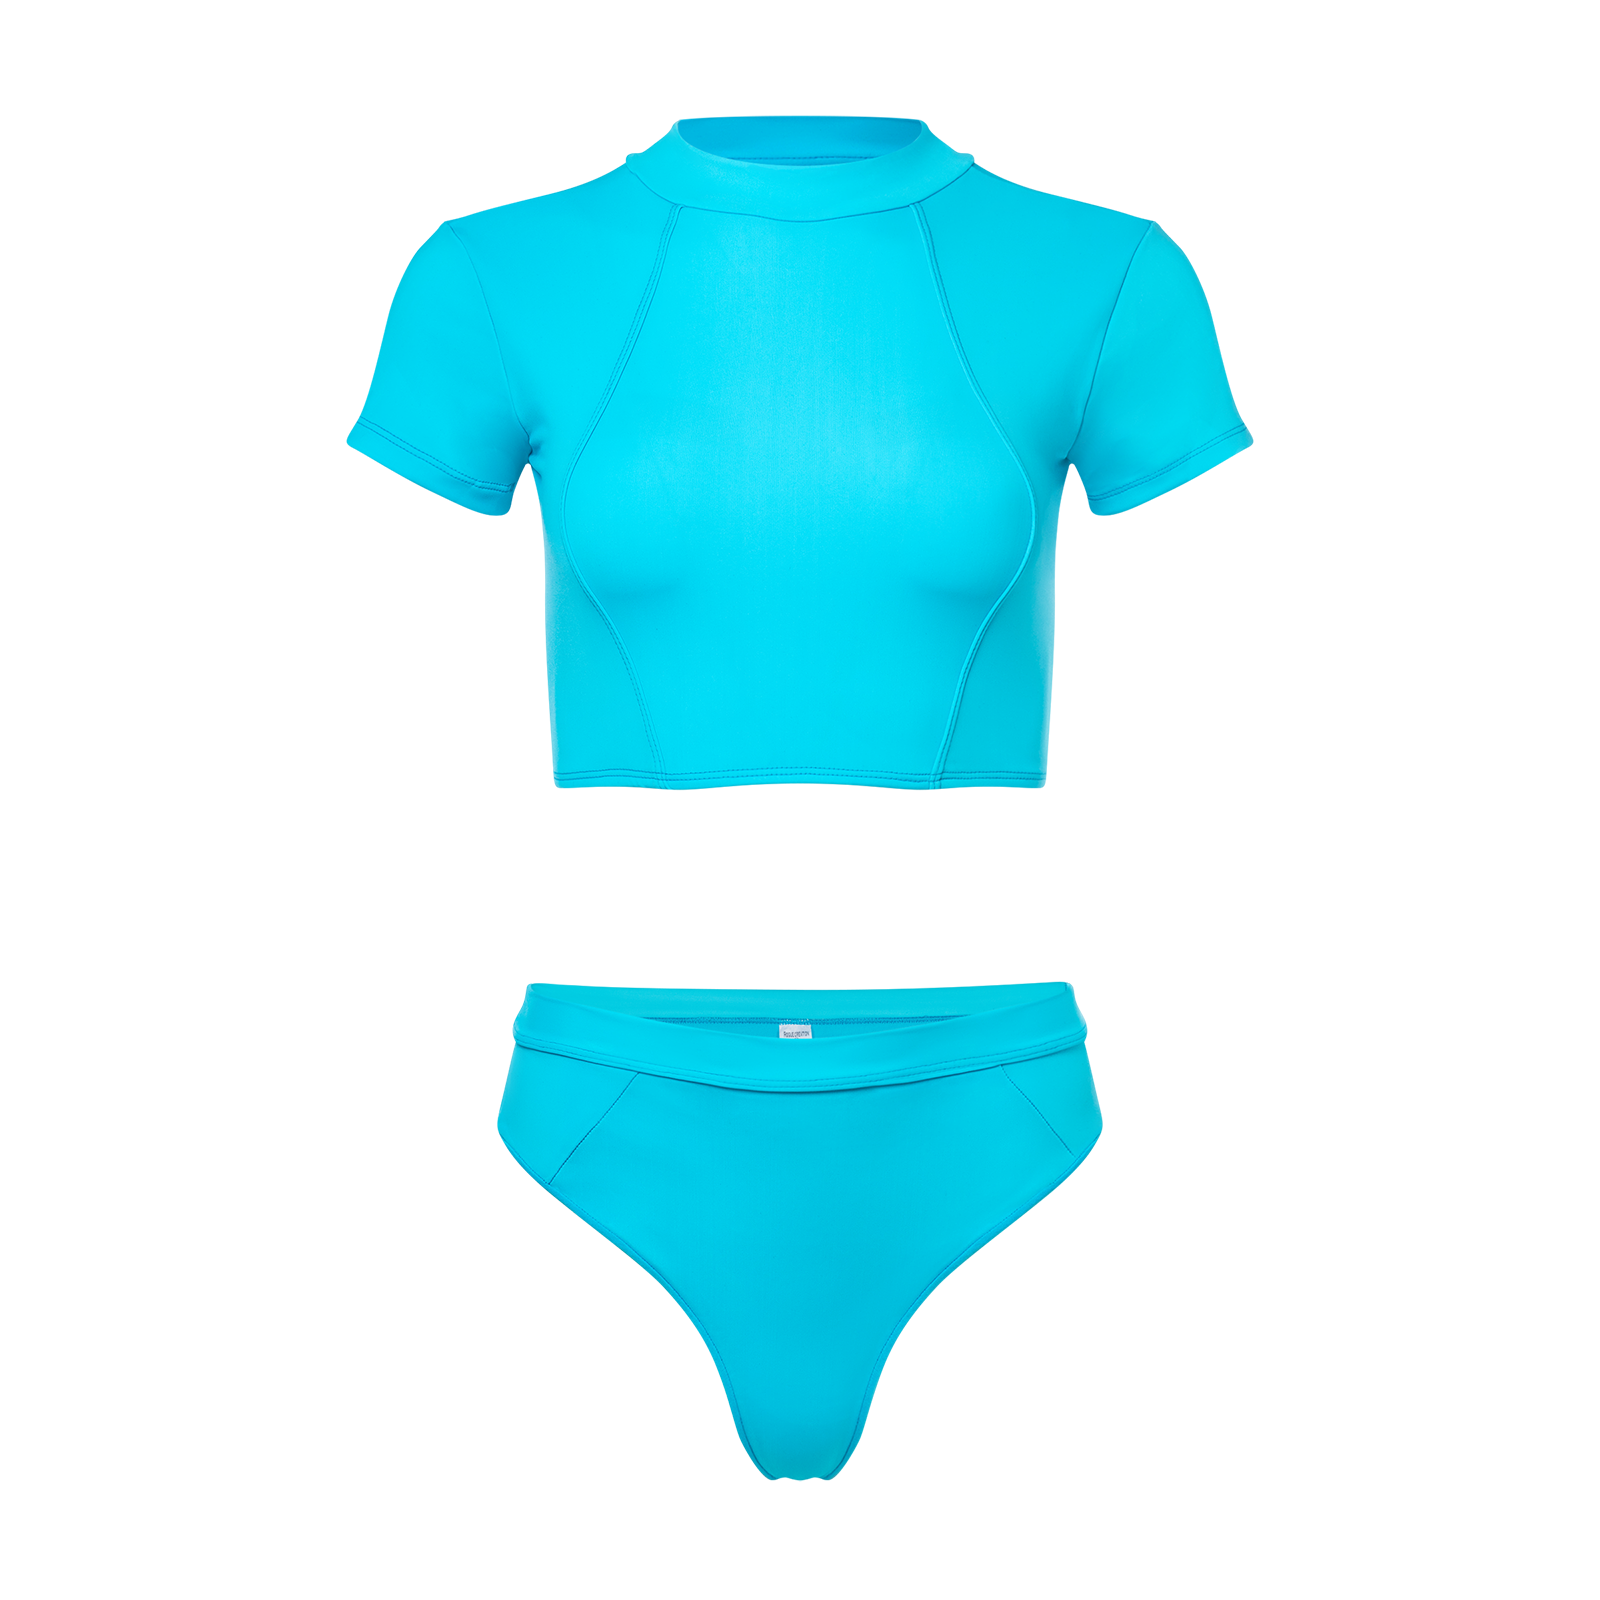 Swimsuit product image